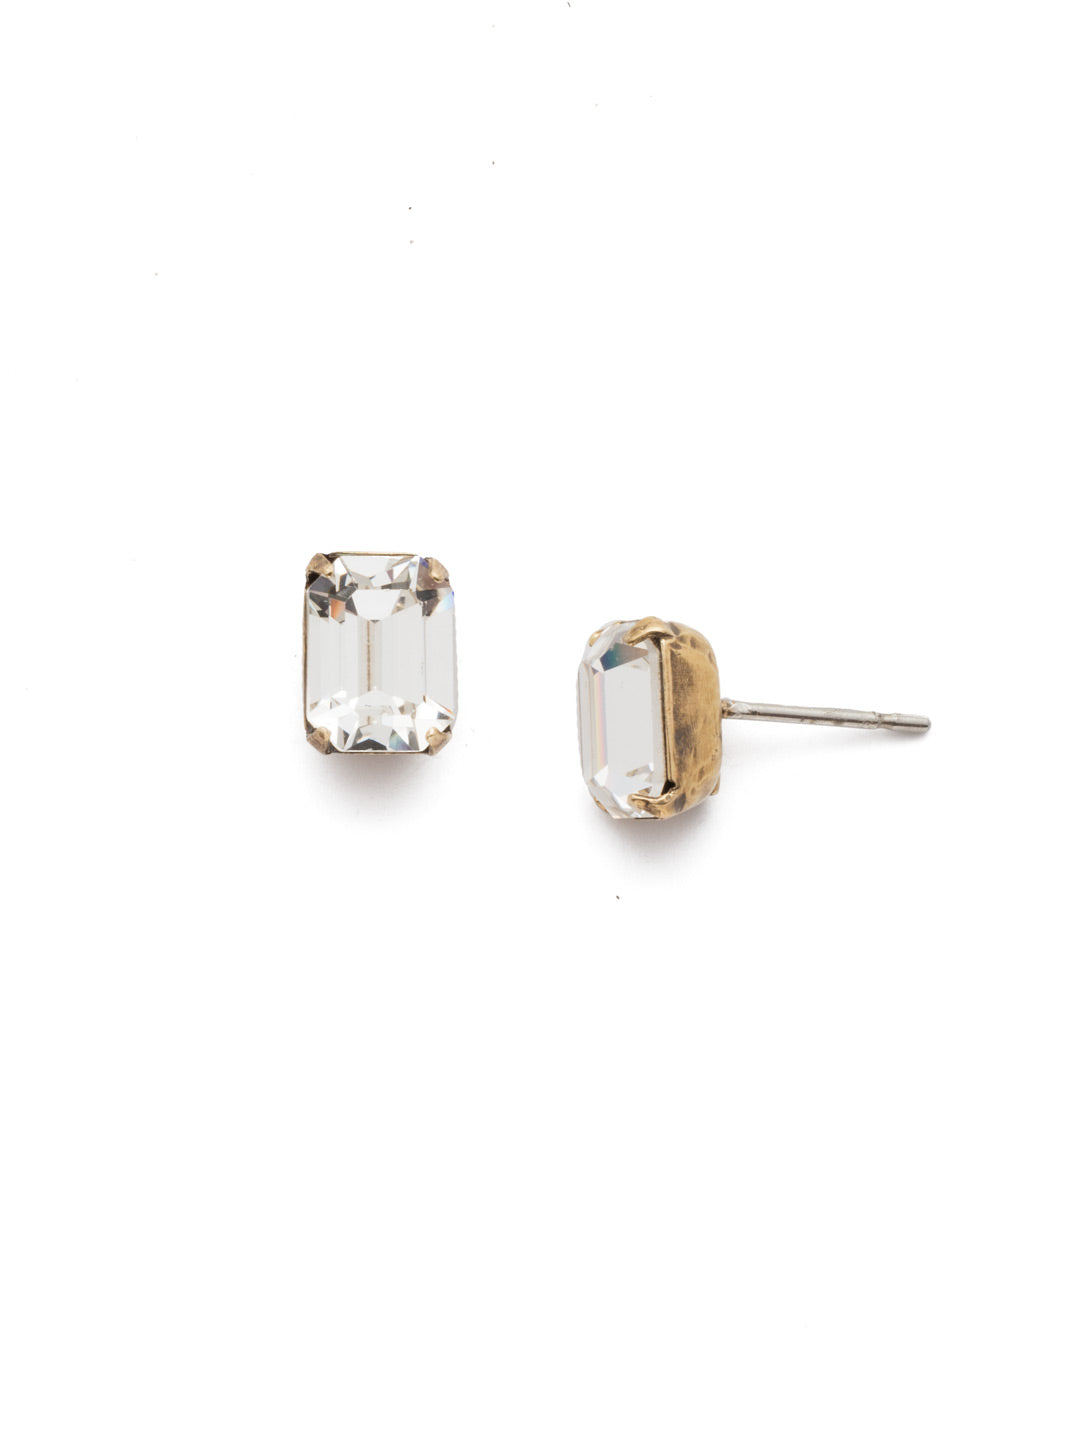 Mini Emerald Cut Stud Earrings - EBY42AGCRY